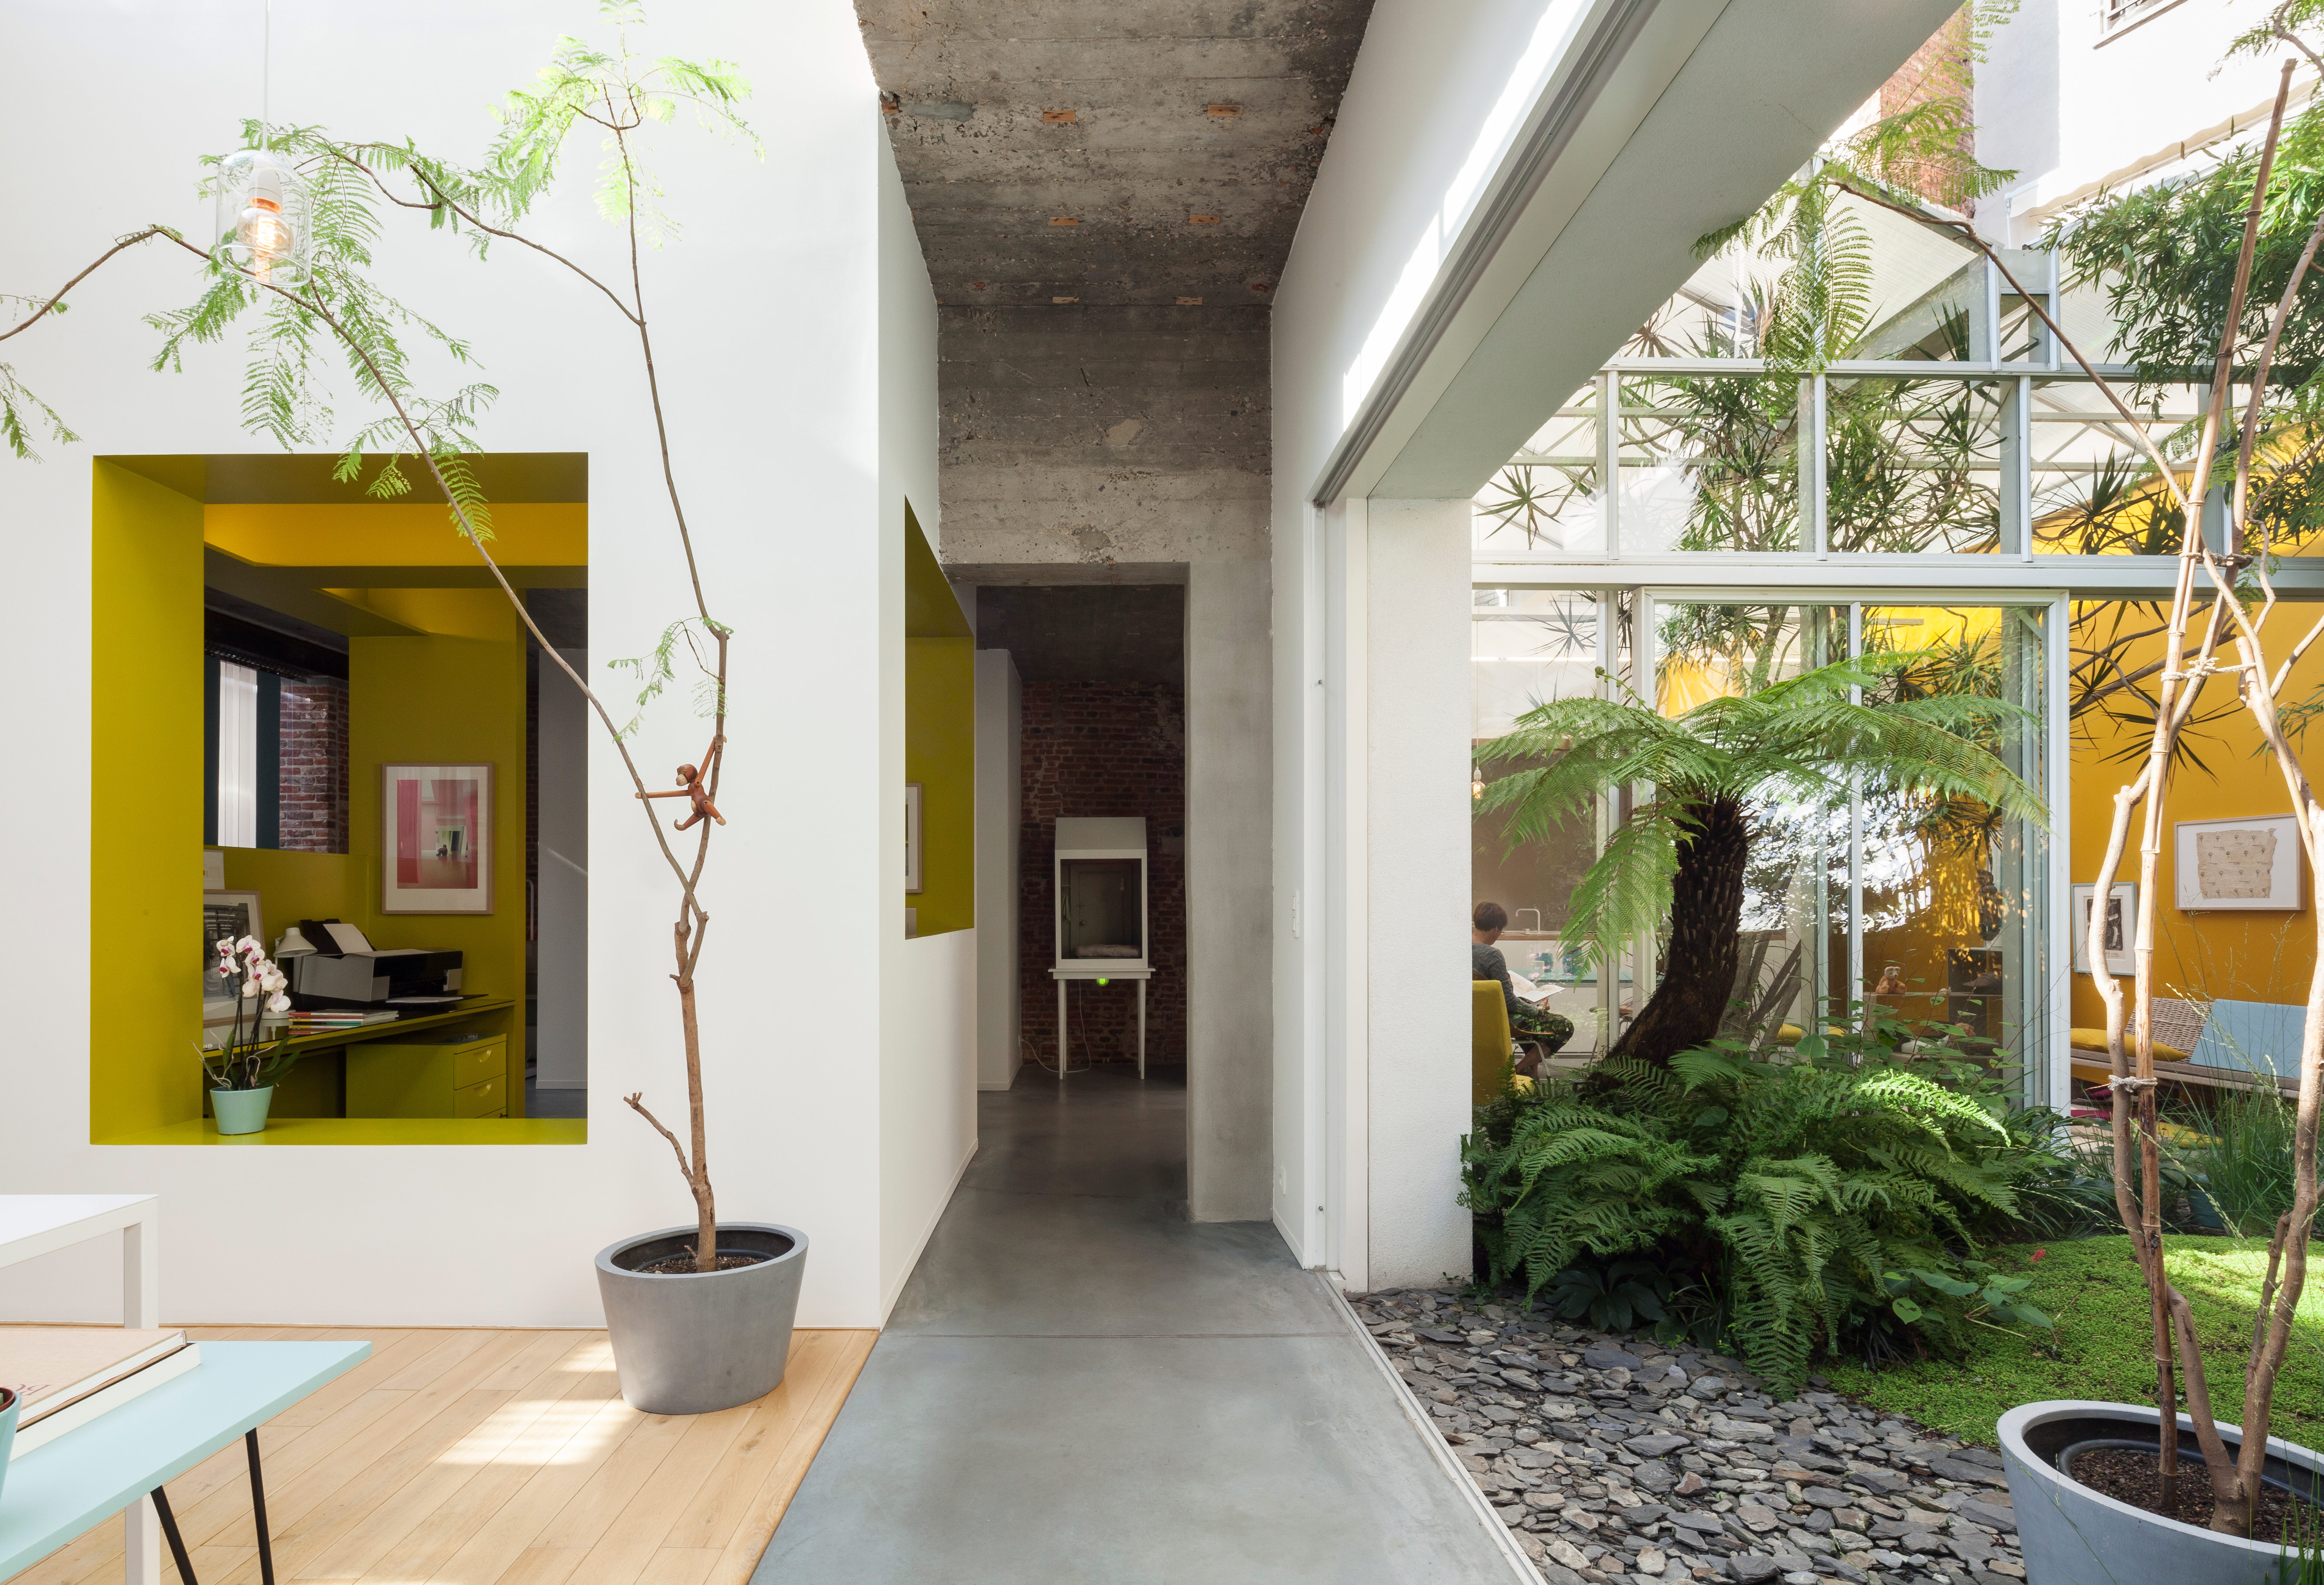 Interior courtyard garden with tropical plants and volcanic sand in Antwerp dwelling.